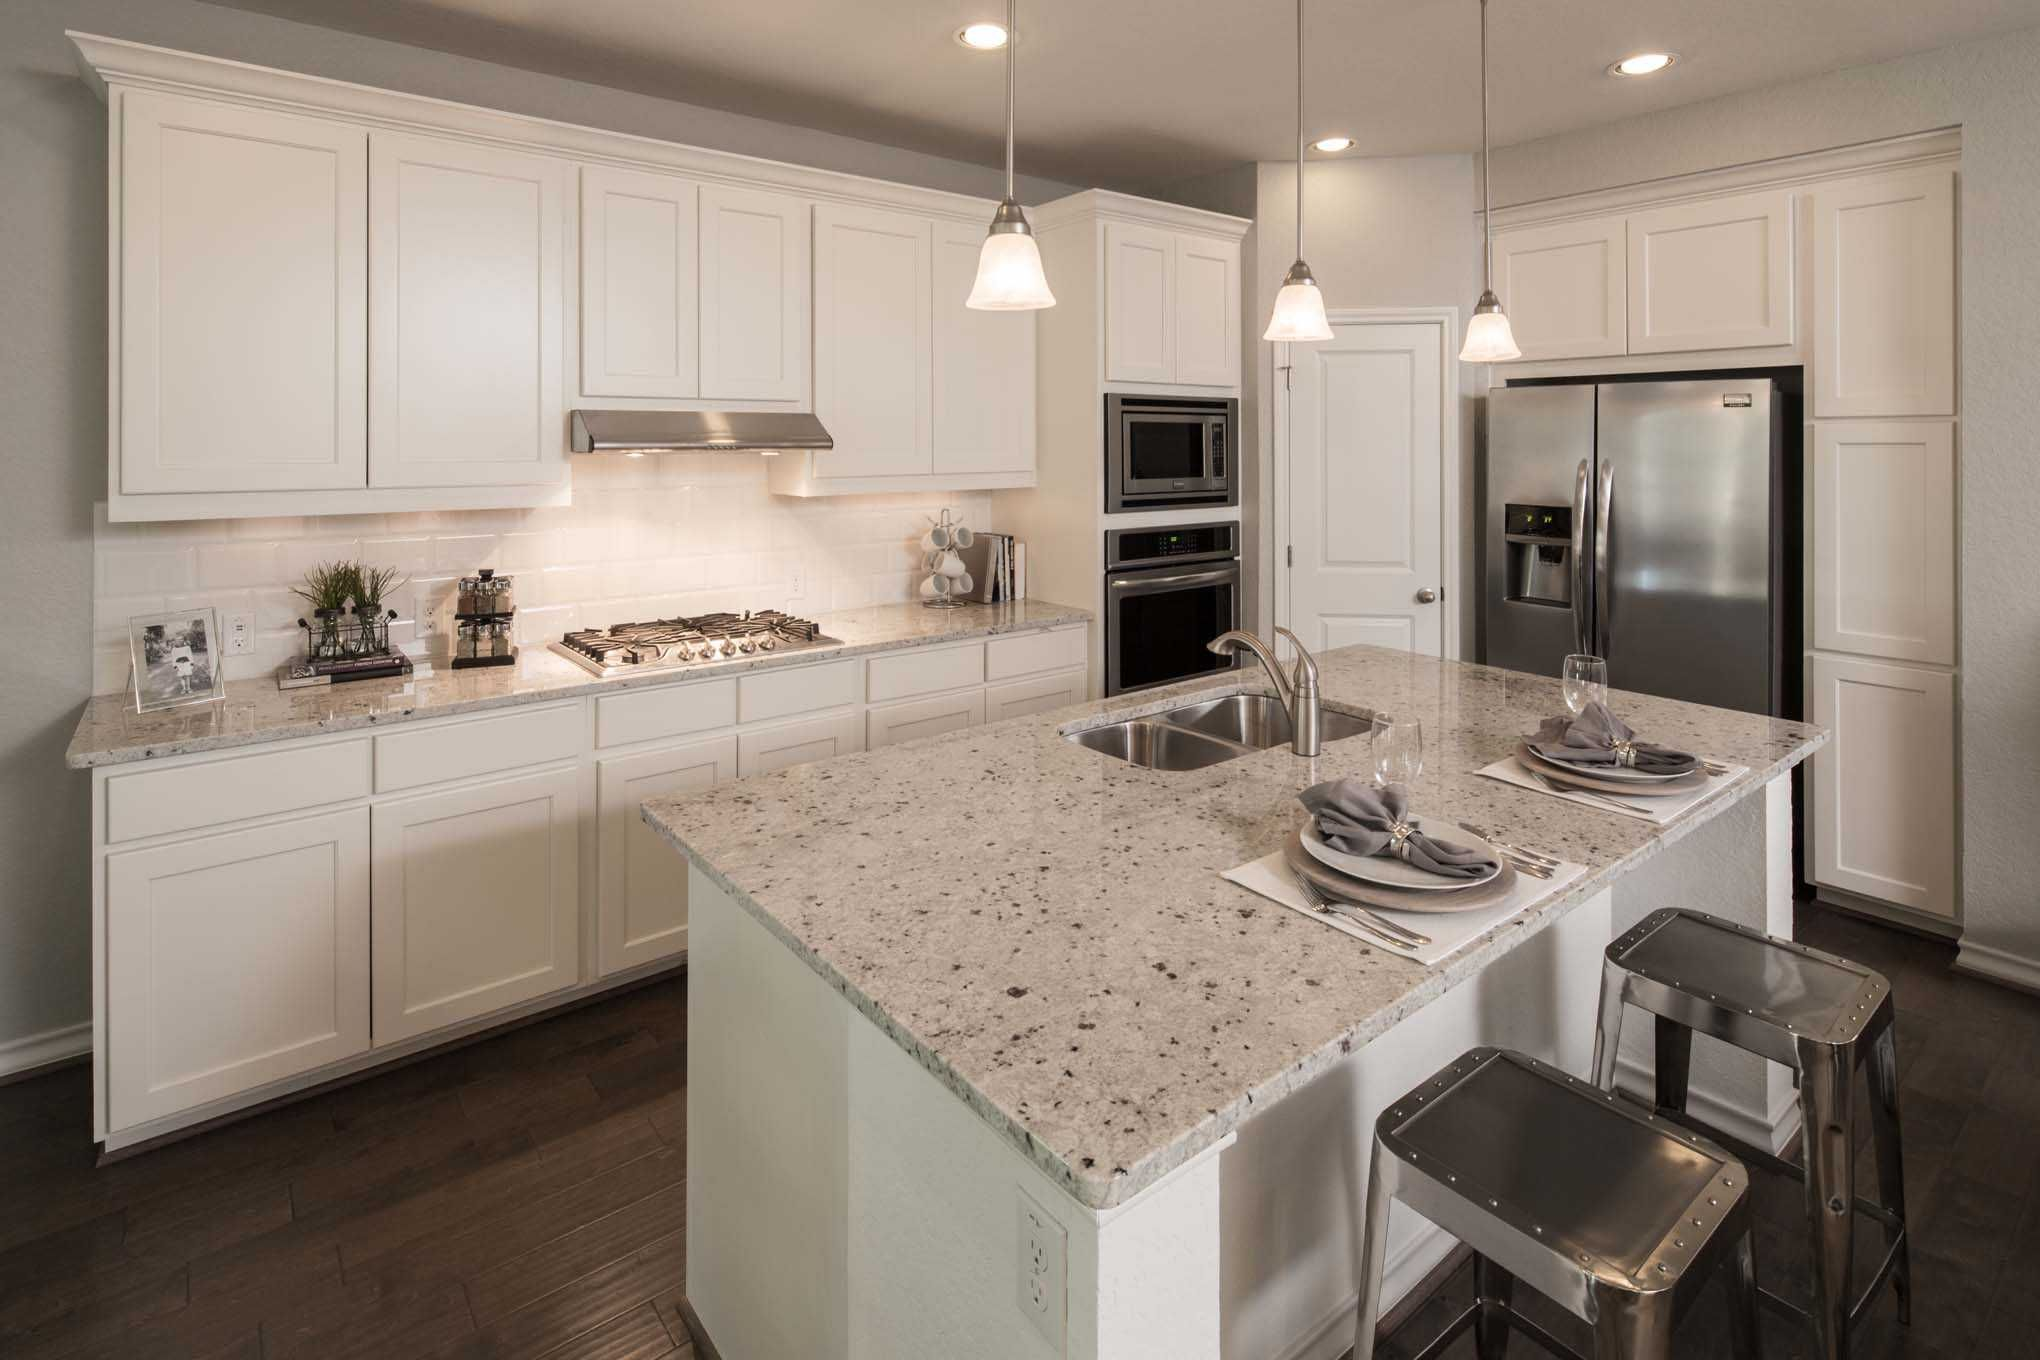 Highland Homes Plan 556 Model Home In San Antonio Texas, The Ranches At  Creekside Community